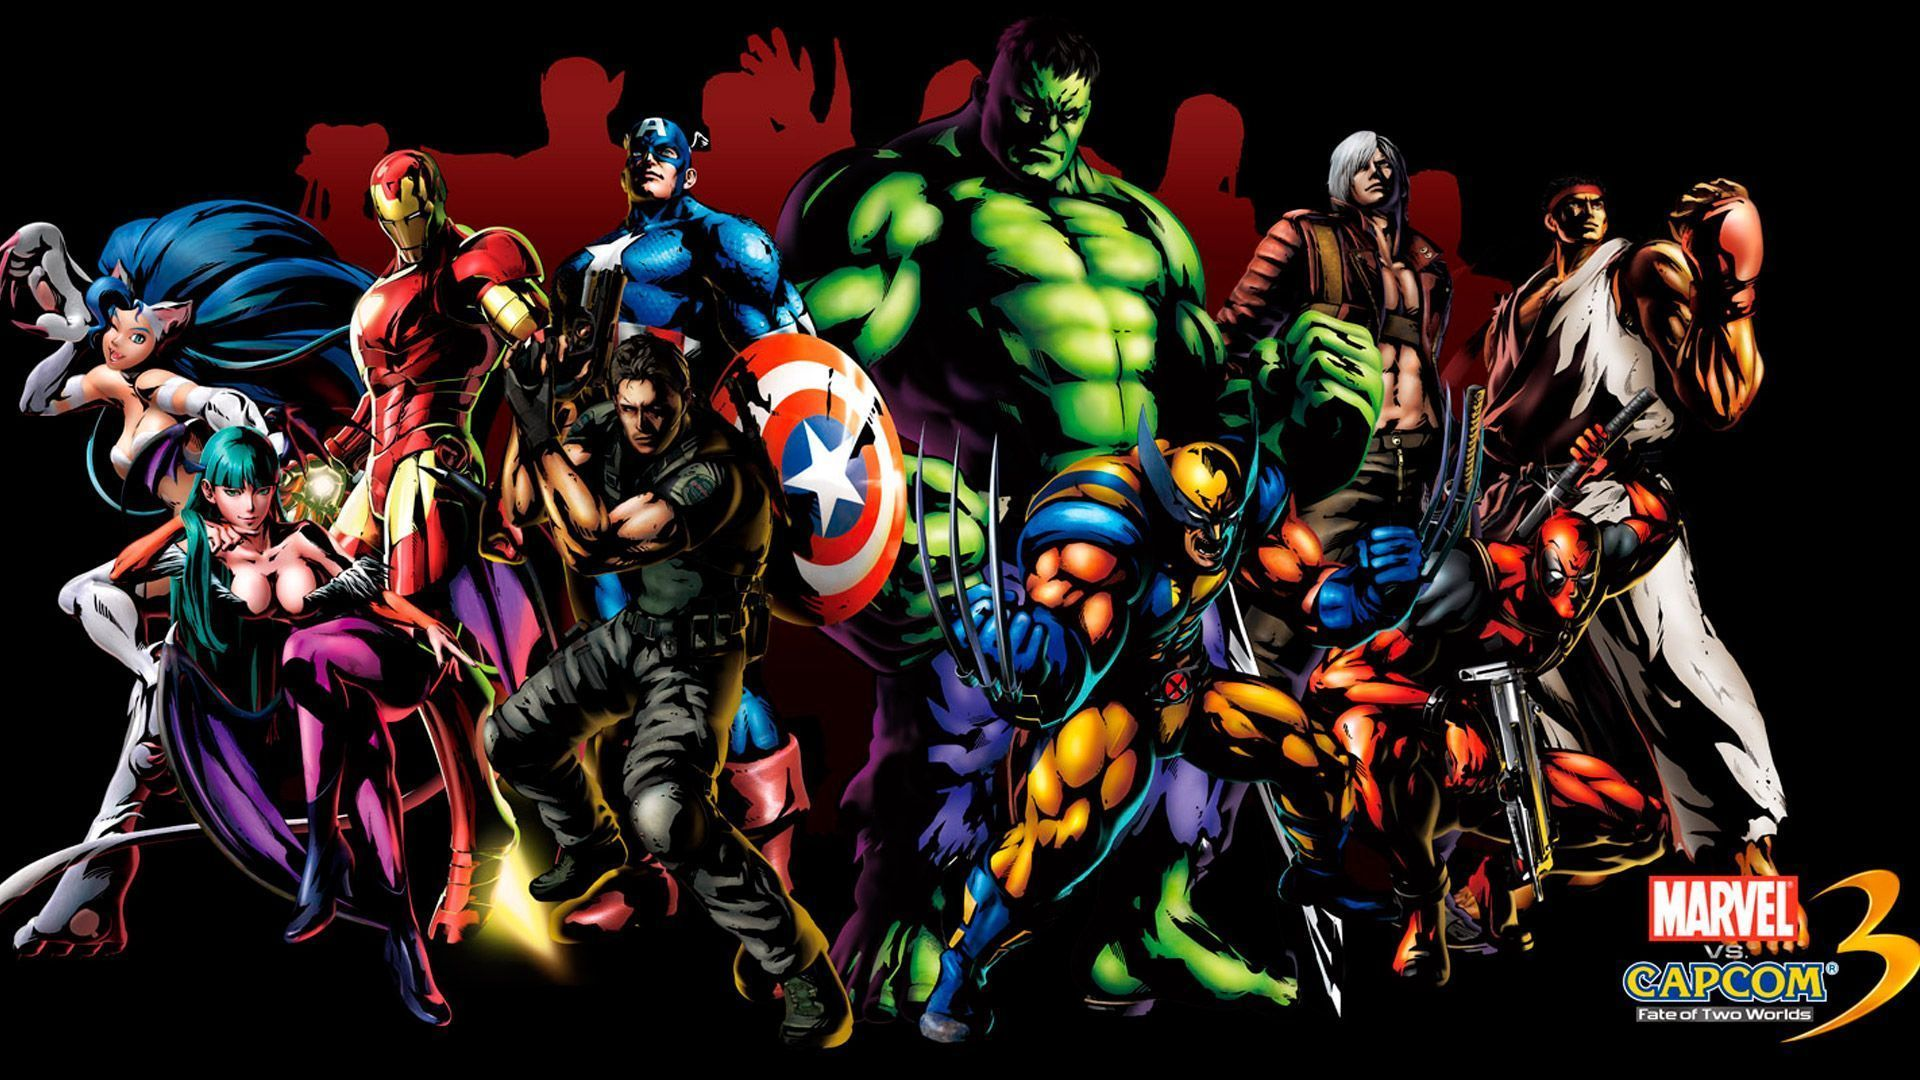 Marvel superheroes wallpapers wallpaper 3d wallpapers pinterest marvel superheroes wallpapers wallpaper voltagebd Choice Image